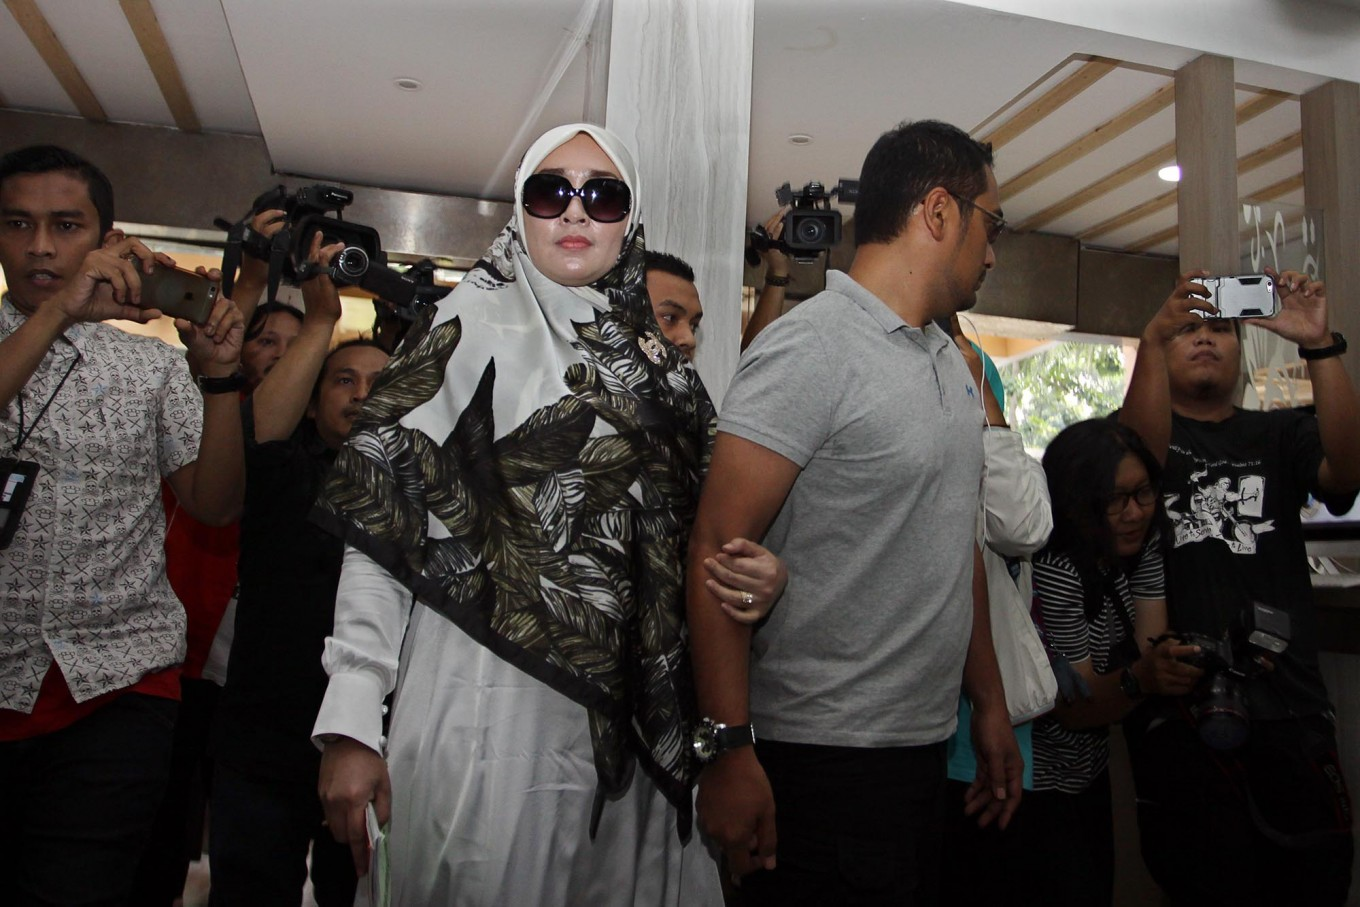 Firza Husein named suspect, charged under Porn Law